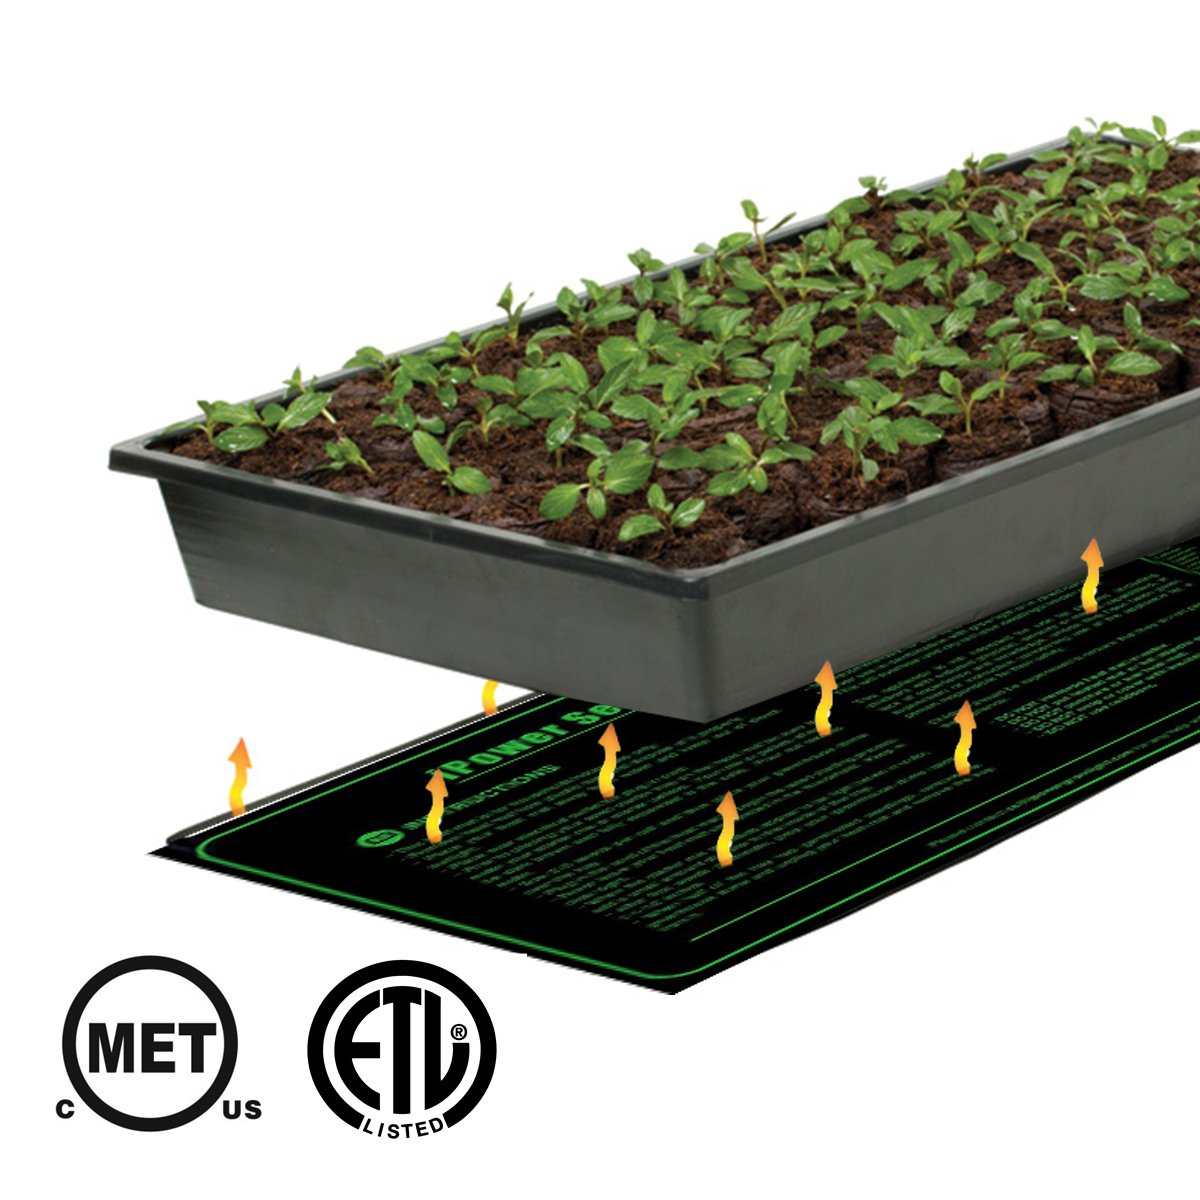 """iPower 10"""" x 20.5"""" Small Warm Hydroponic Seedling Heat Mat and 68-108°F Digital Thermostat Control Combo Set for Seed Germination"""